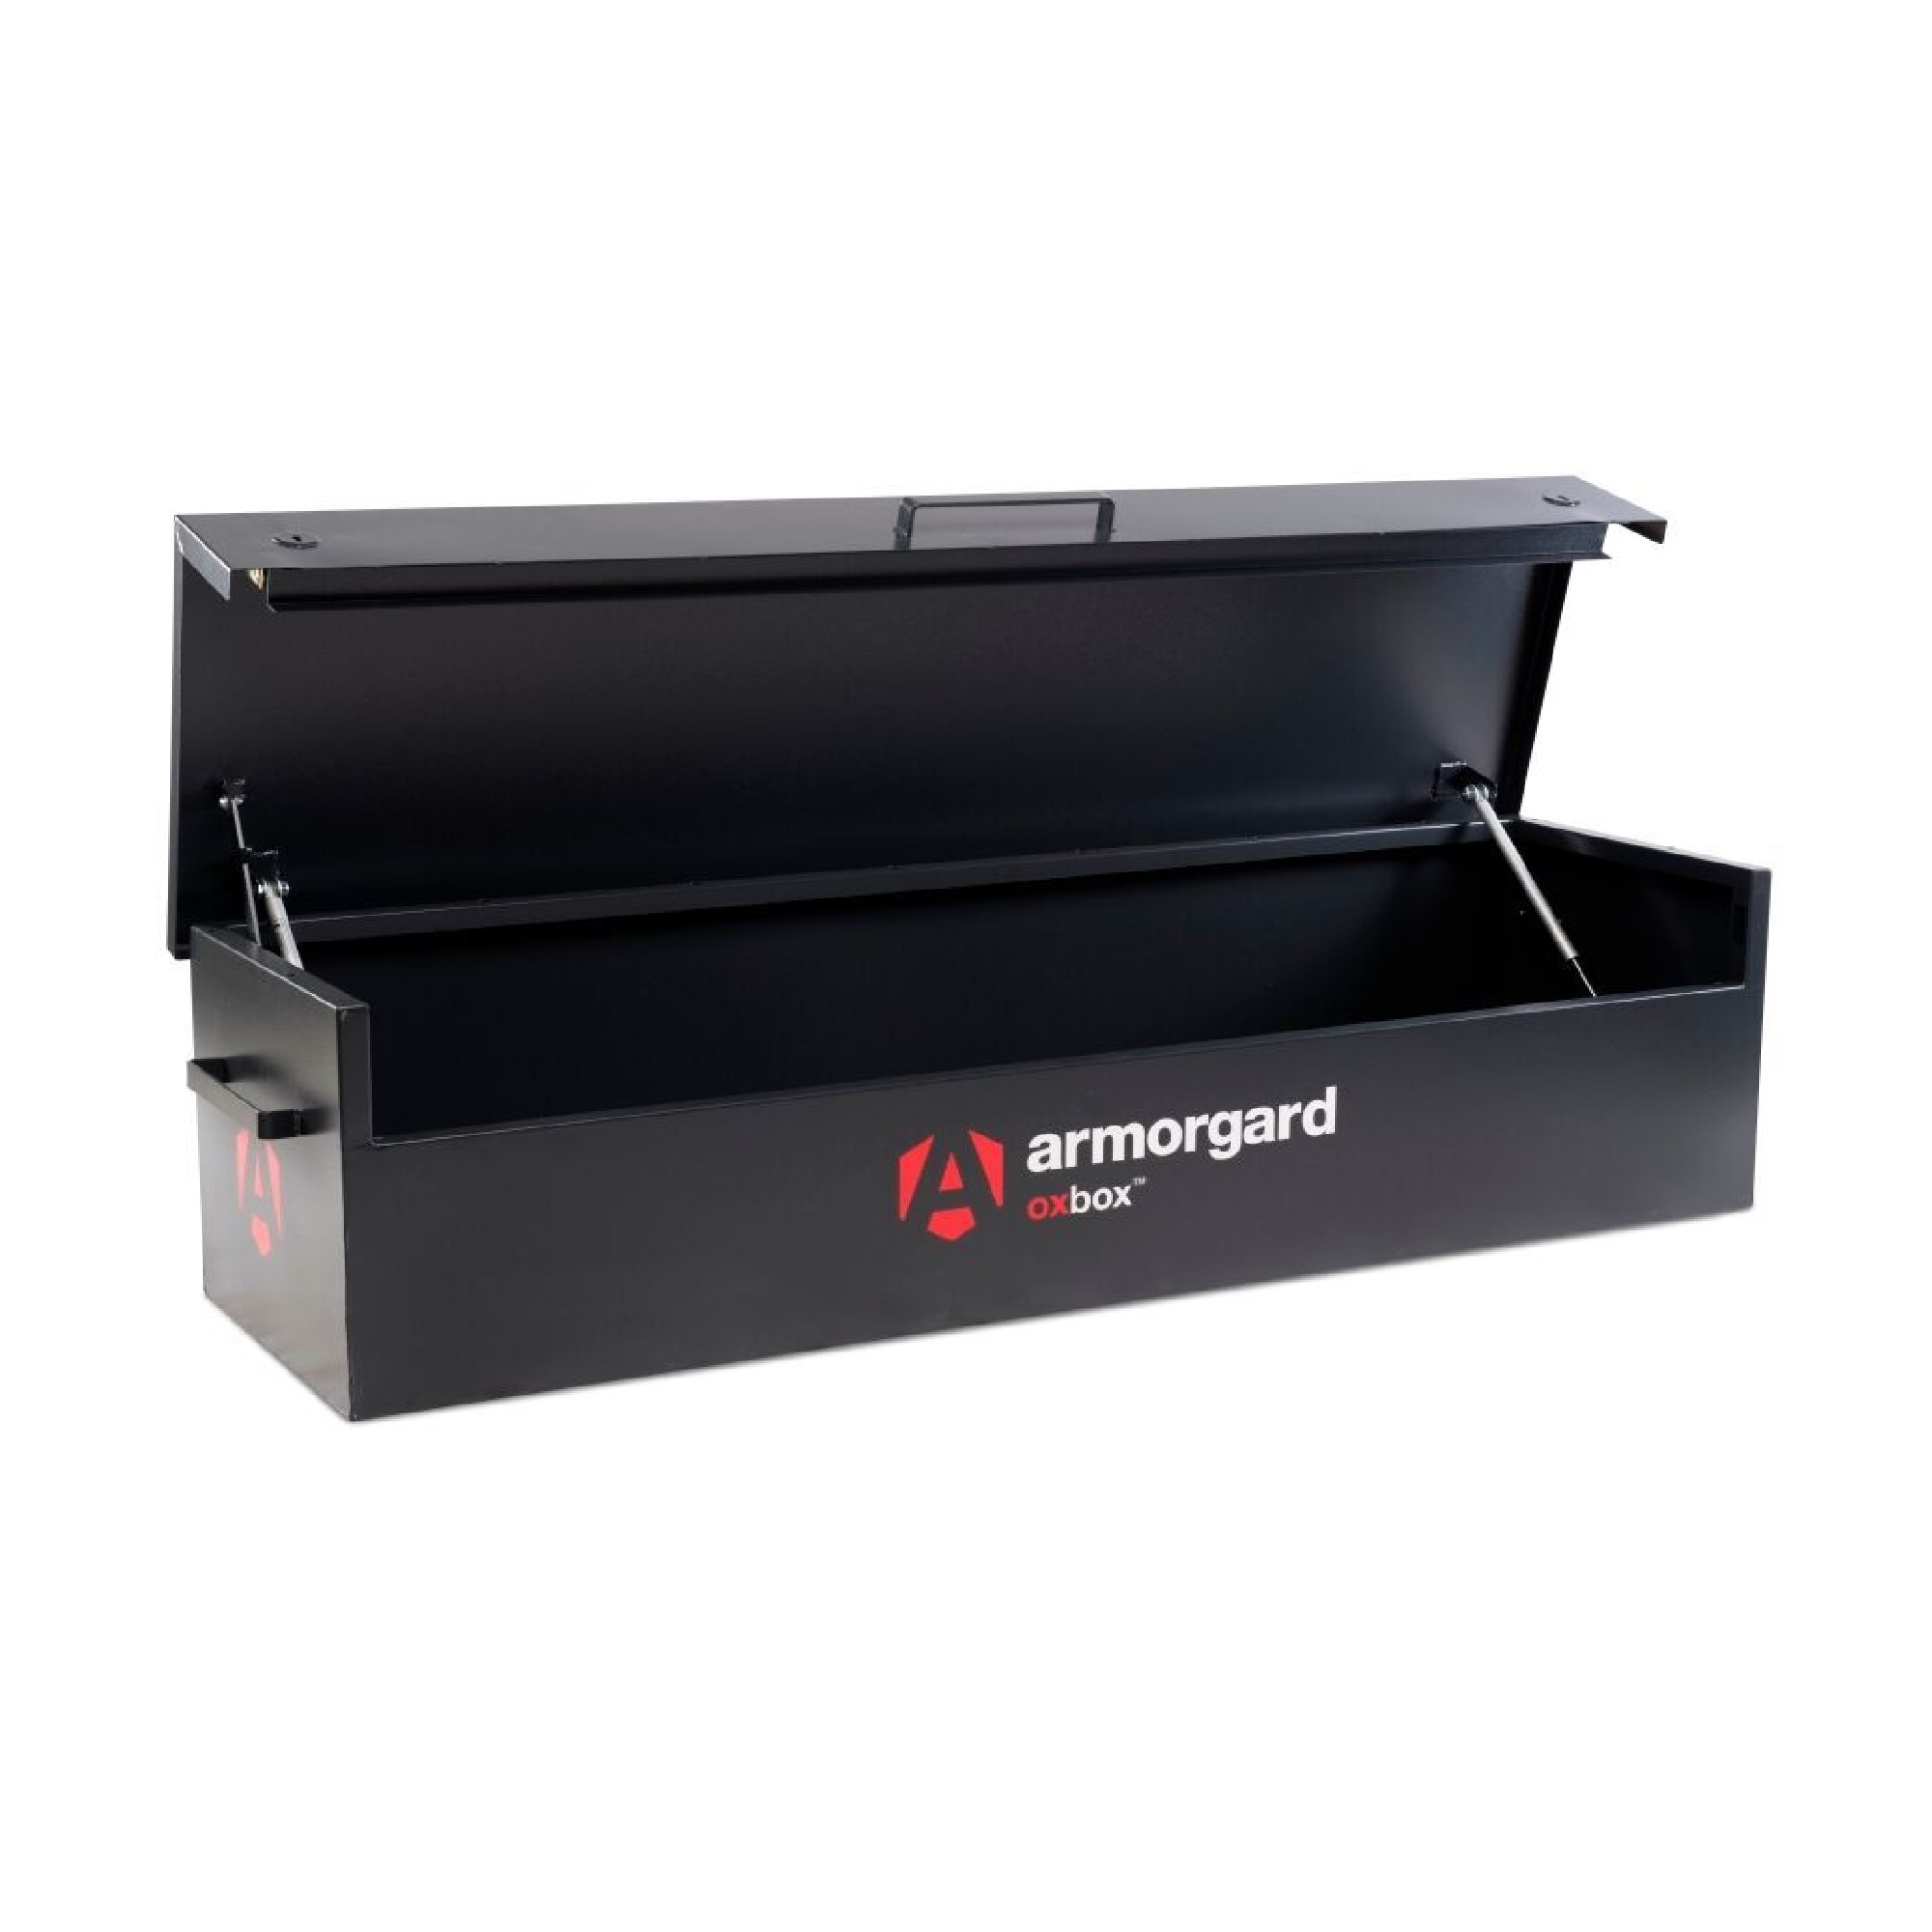 Armorgard Oxbox Truck Box OX6